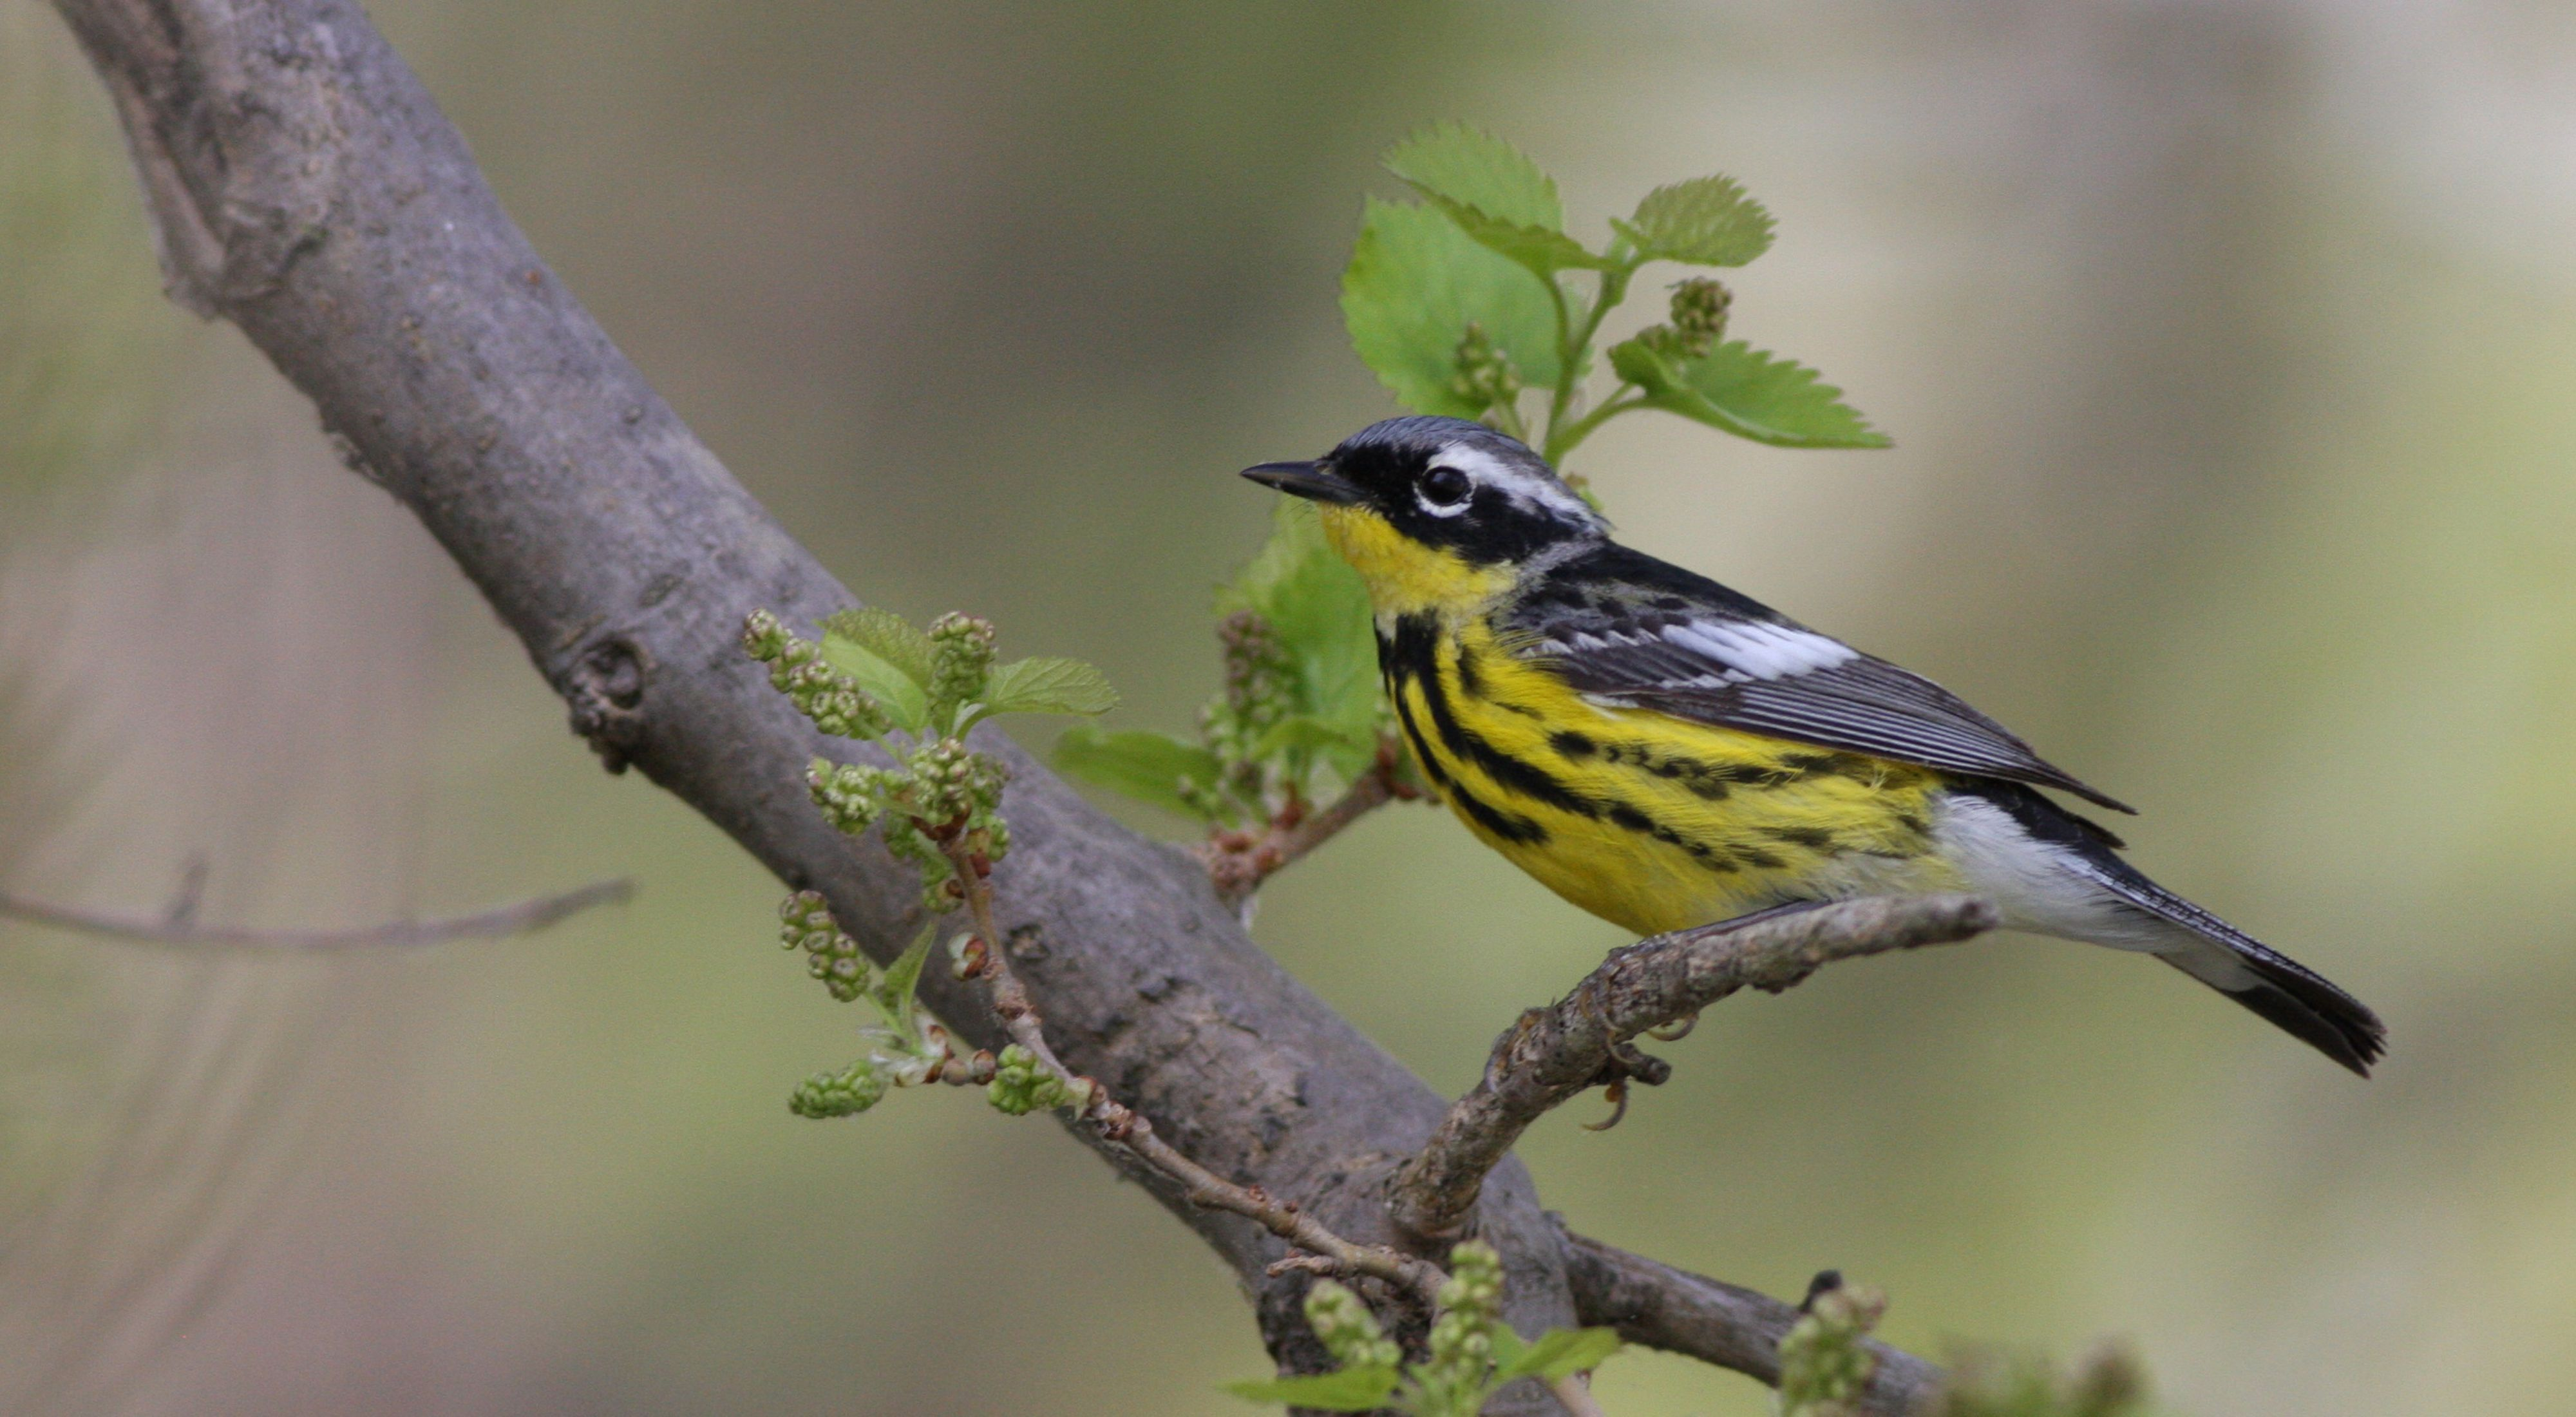 Gray and black bird with white stripe above the eye and yellow breast with black stripes sits on a small tree branch.